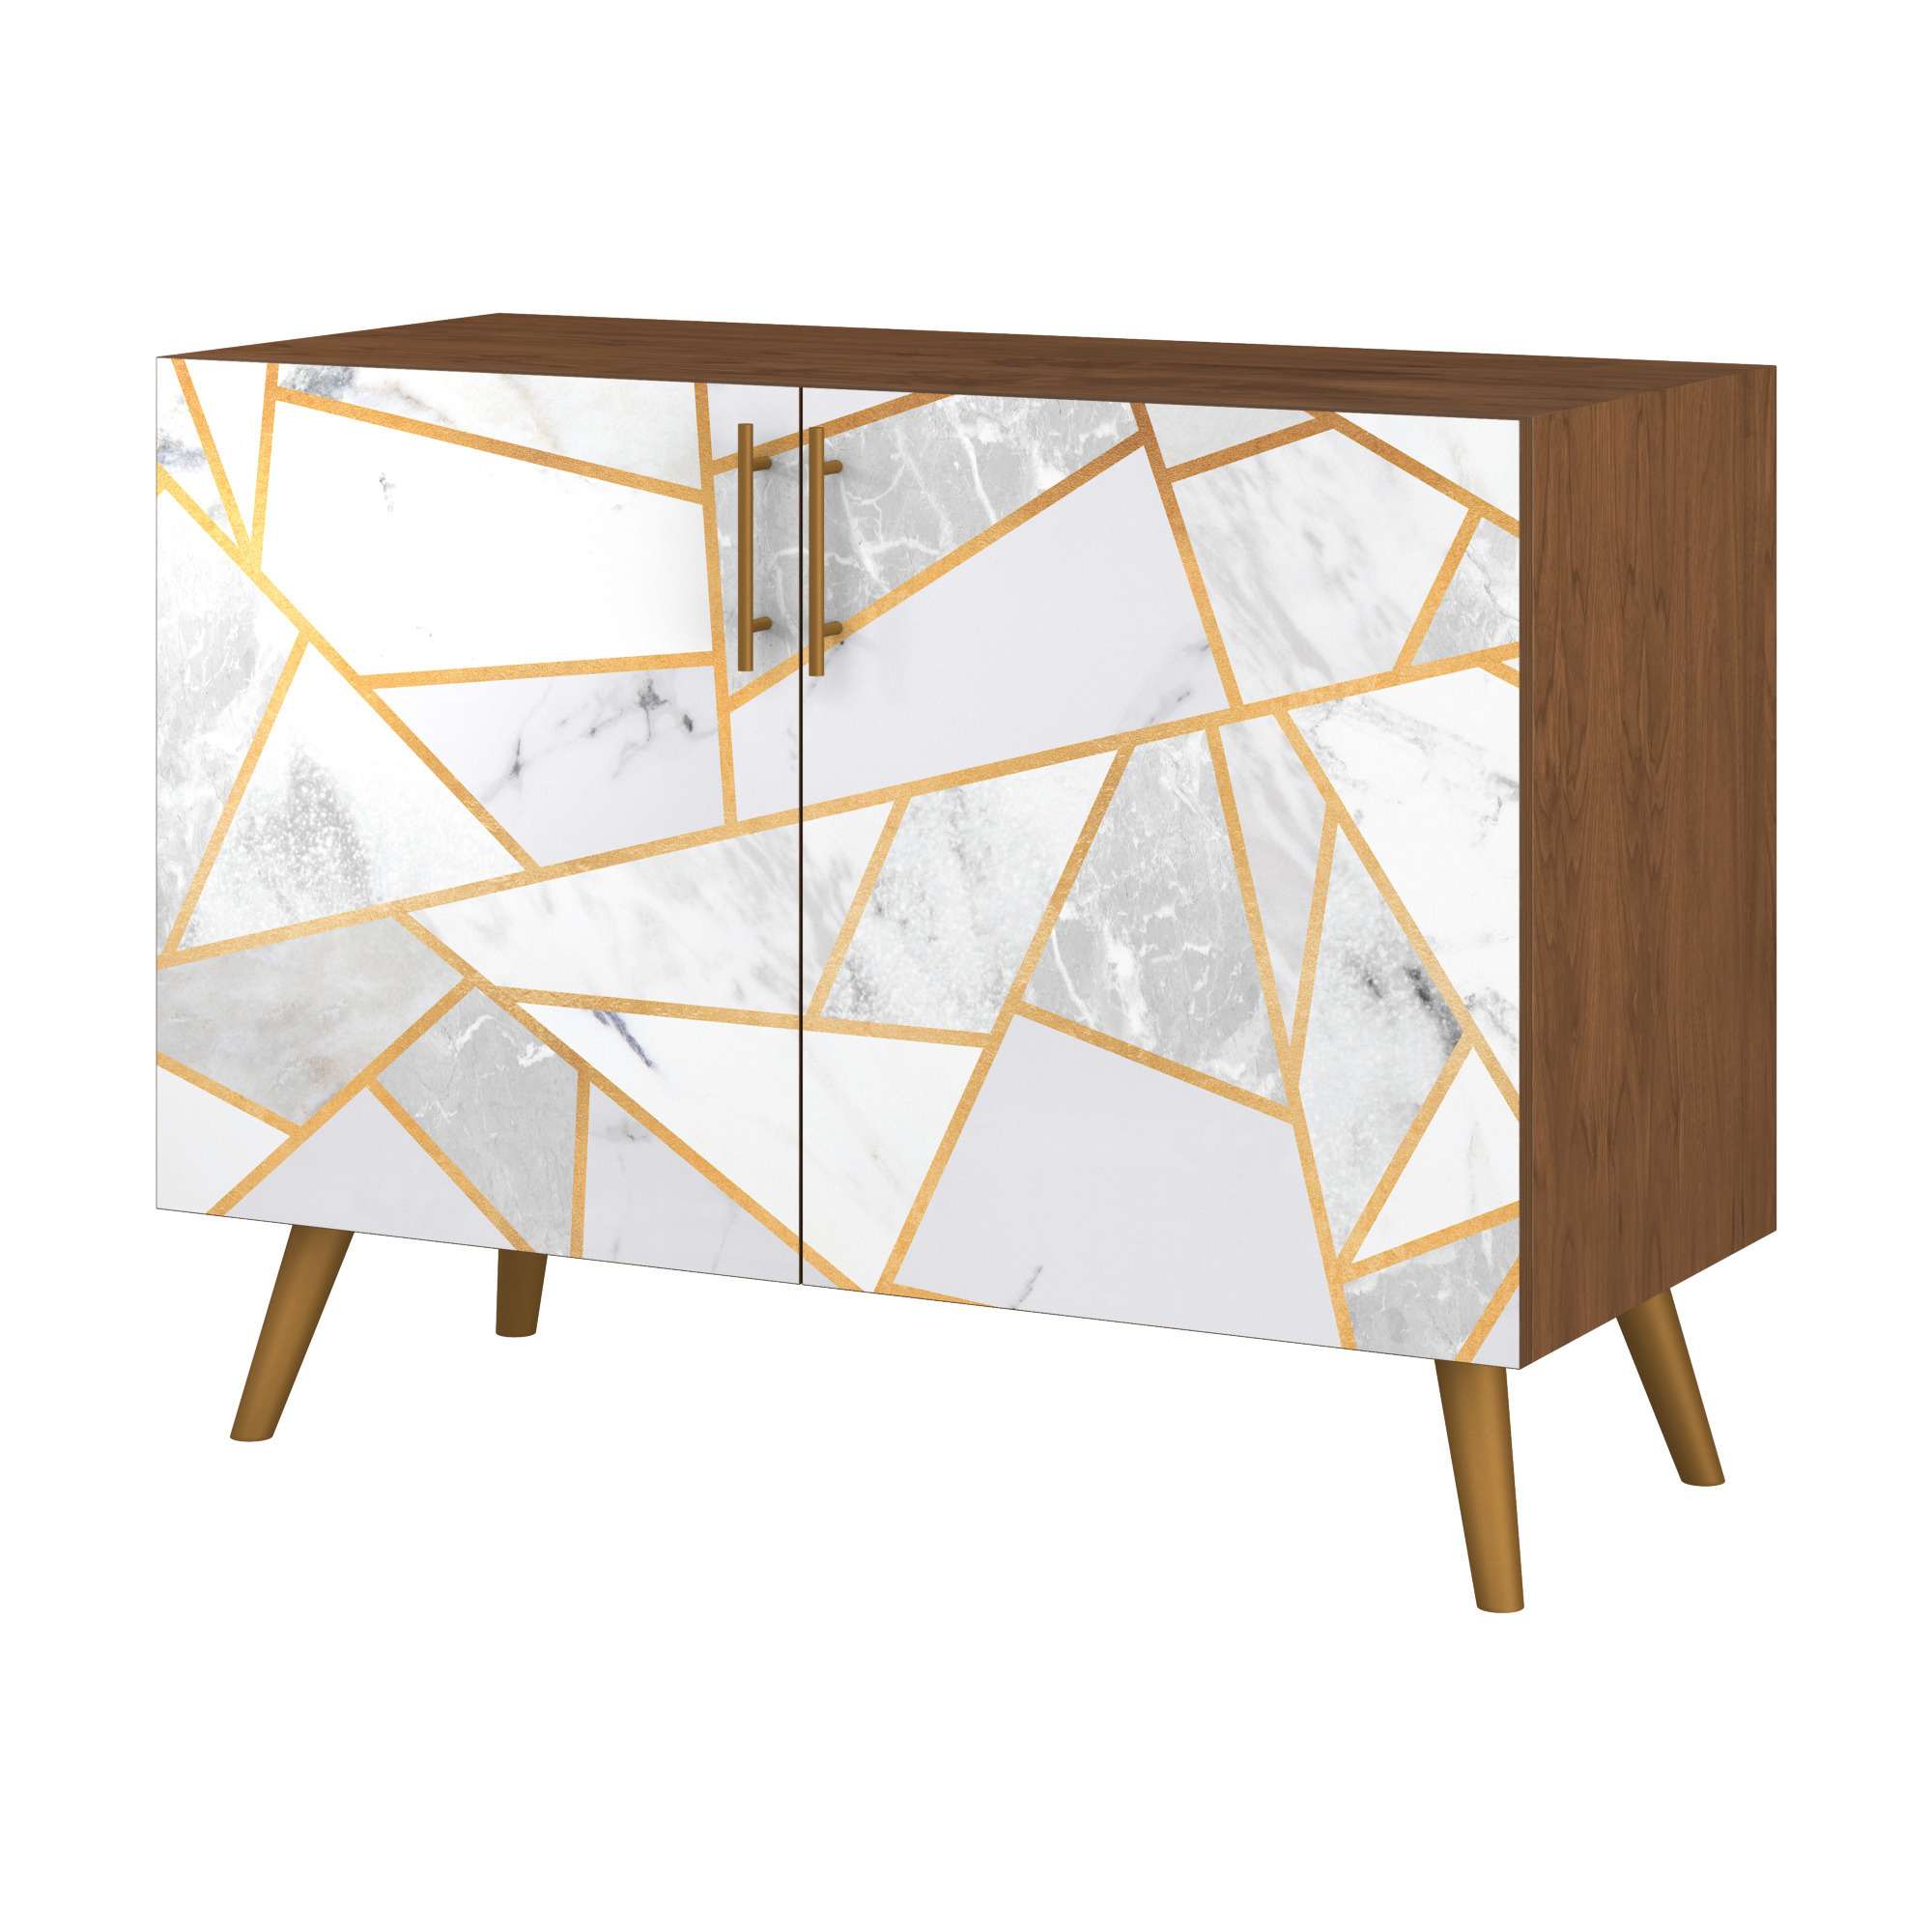 Customize Credenzas | Snugsquare Within Bright Angles Credenzas (View 11 of 20)